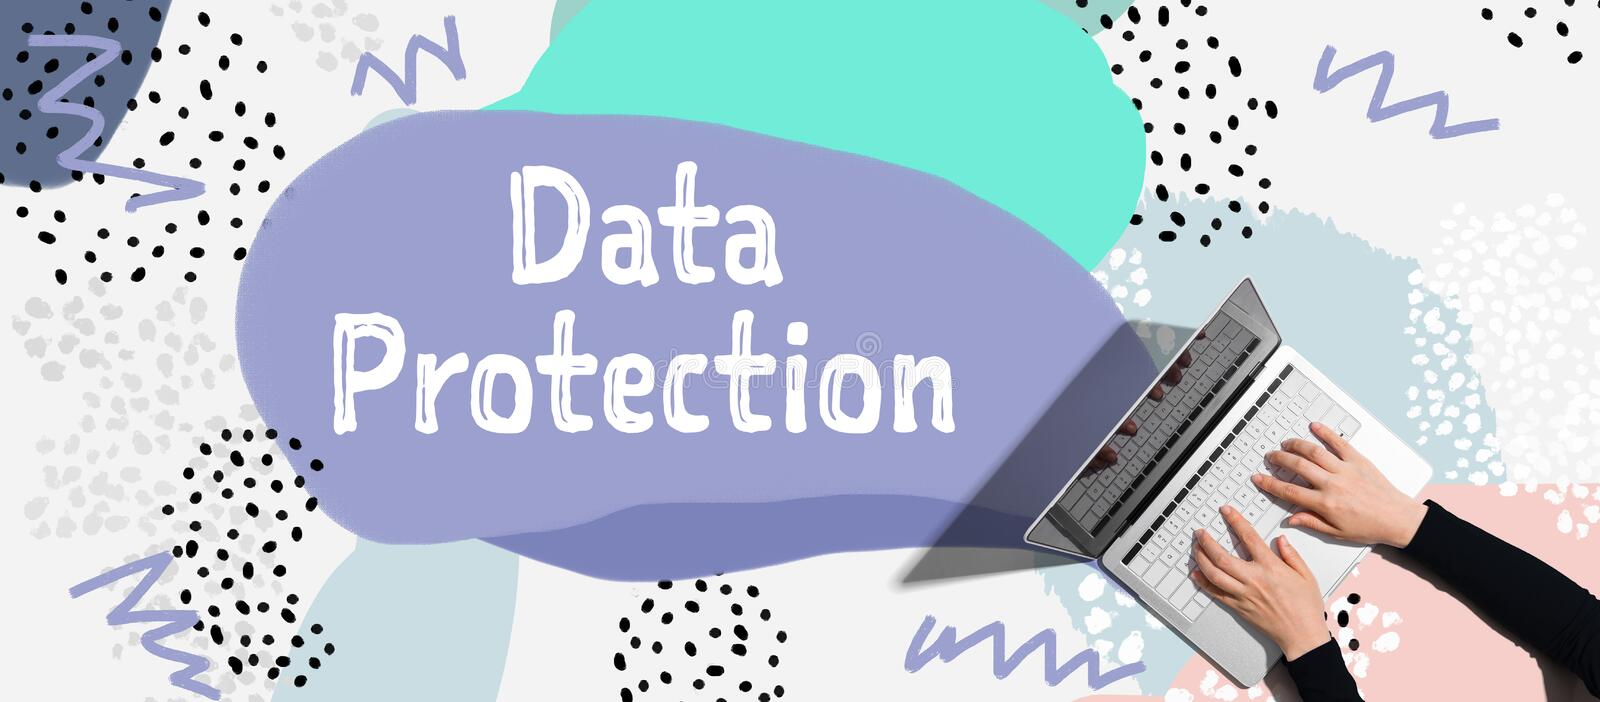 Data protection with person using laptop. Data protection with person using a laptop computer vector illustration